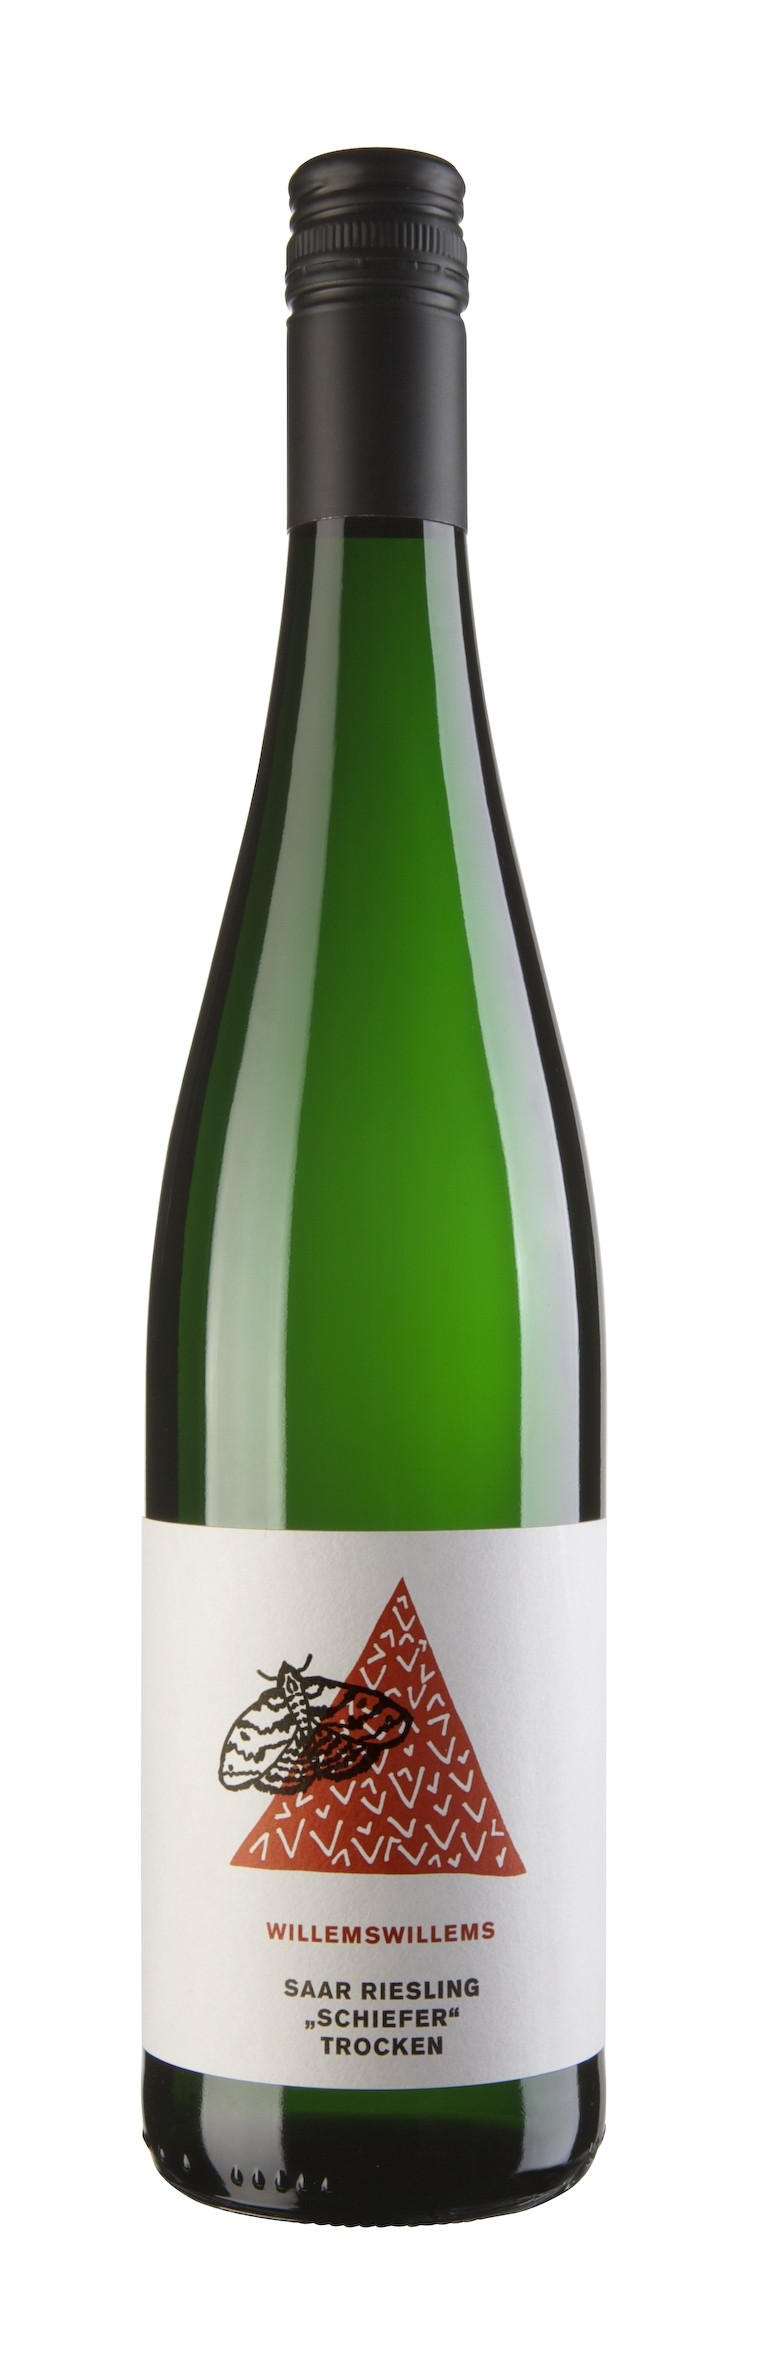 Willems Willems 'Schiefer' Riesling